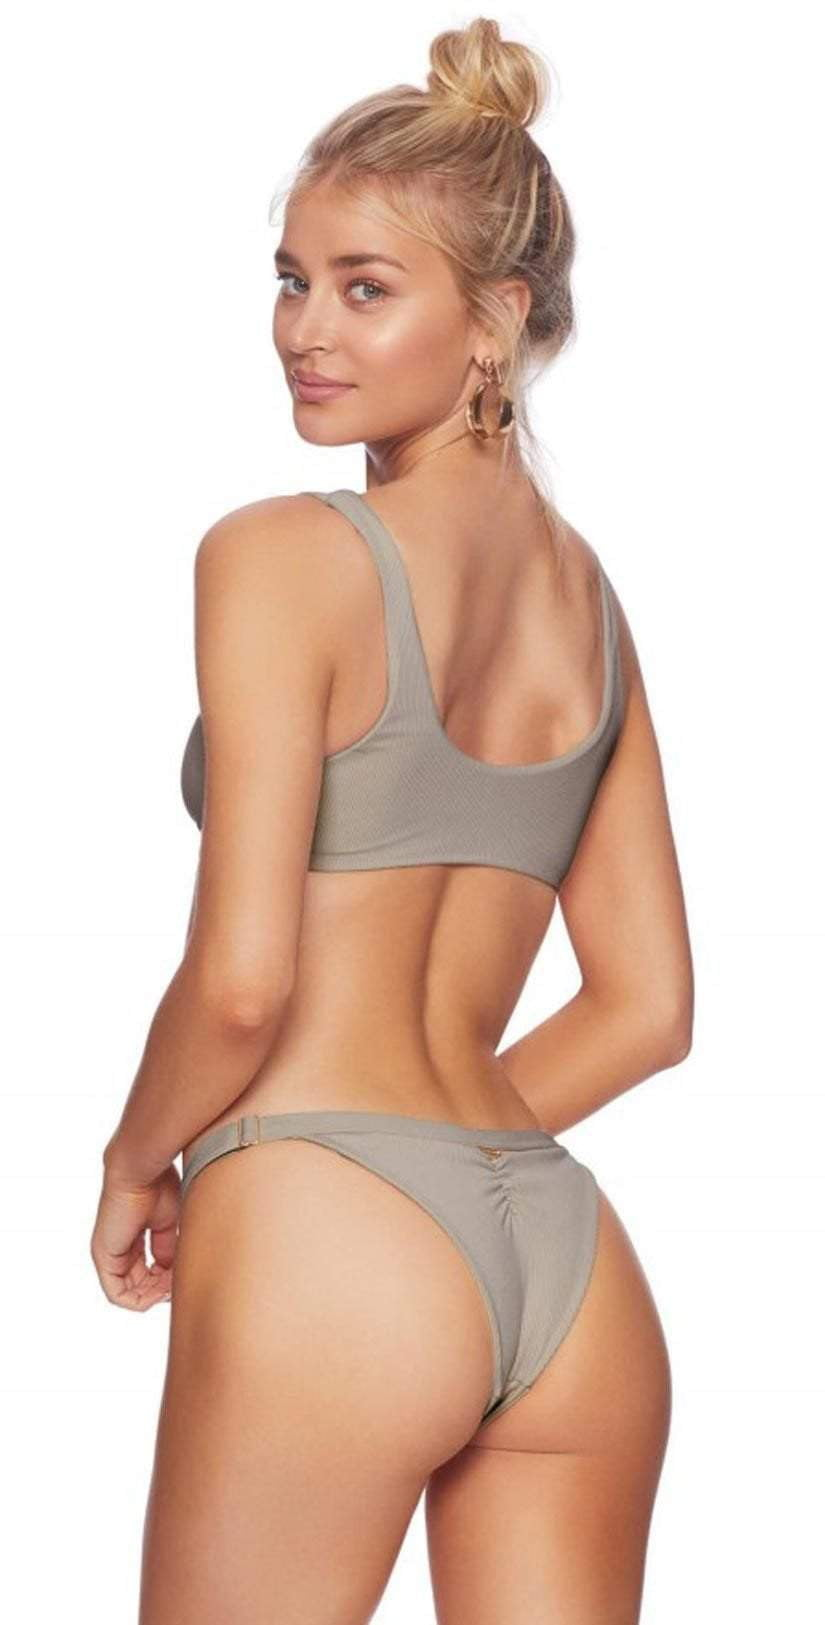 Beach Bunny Rib Tide Skimpy Bottom In Taupe B17125B2-TORT Back View